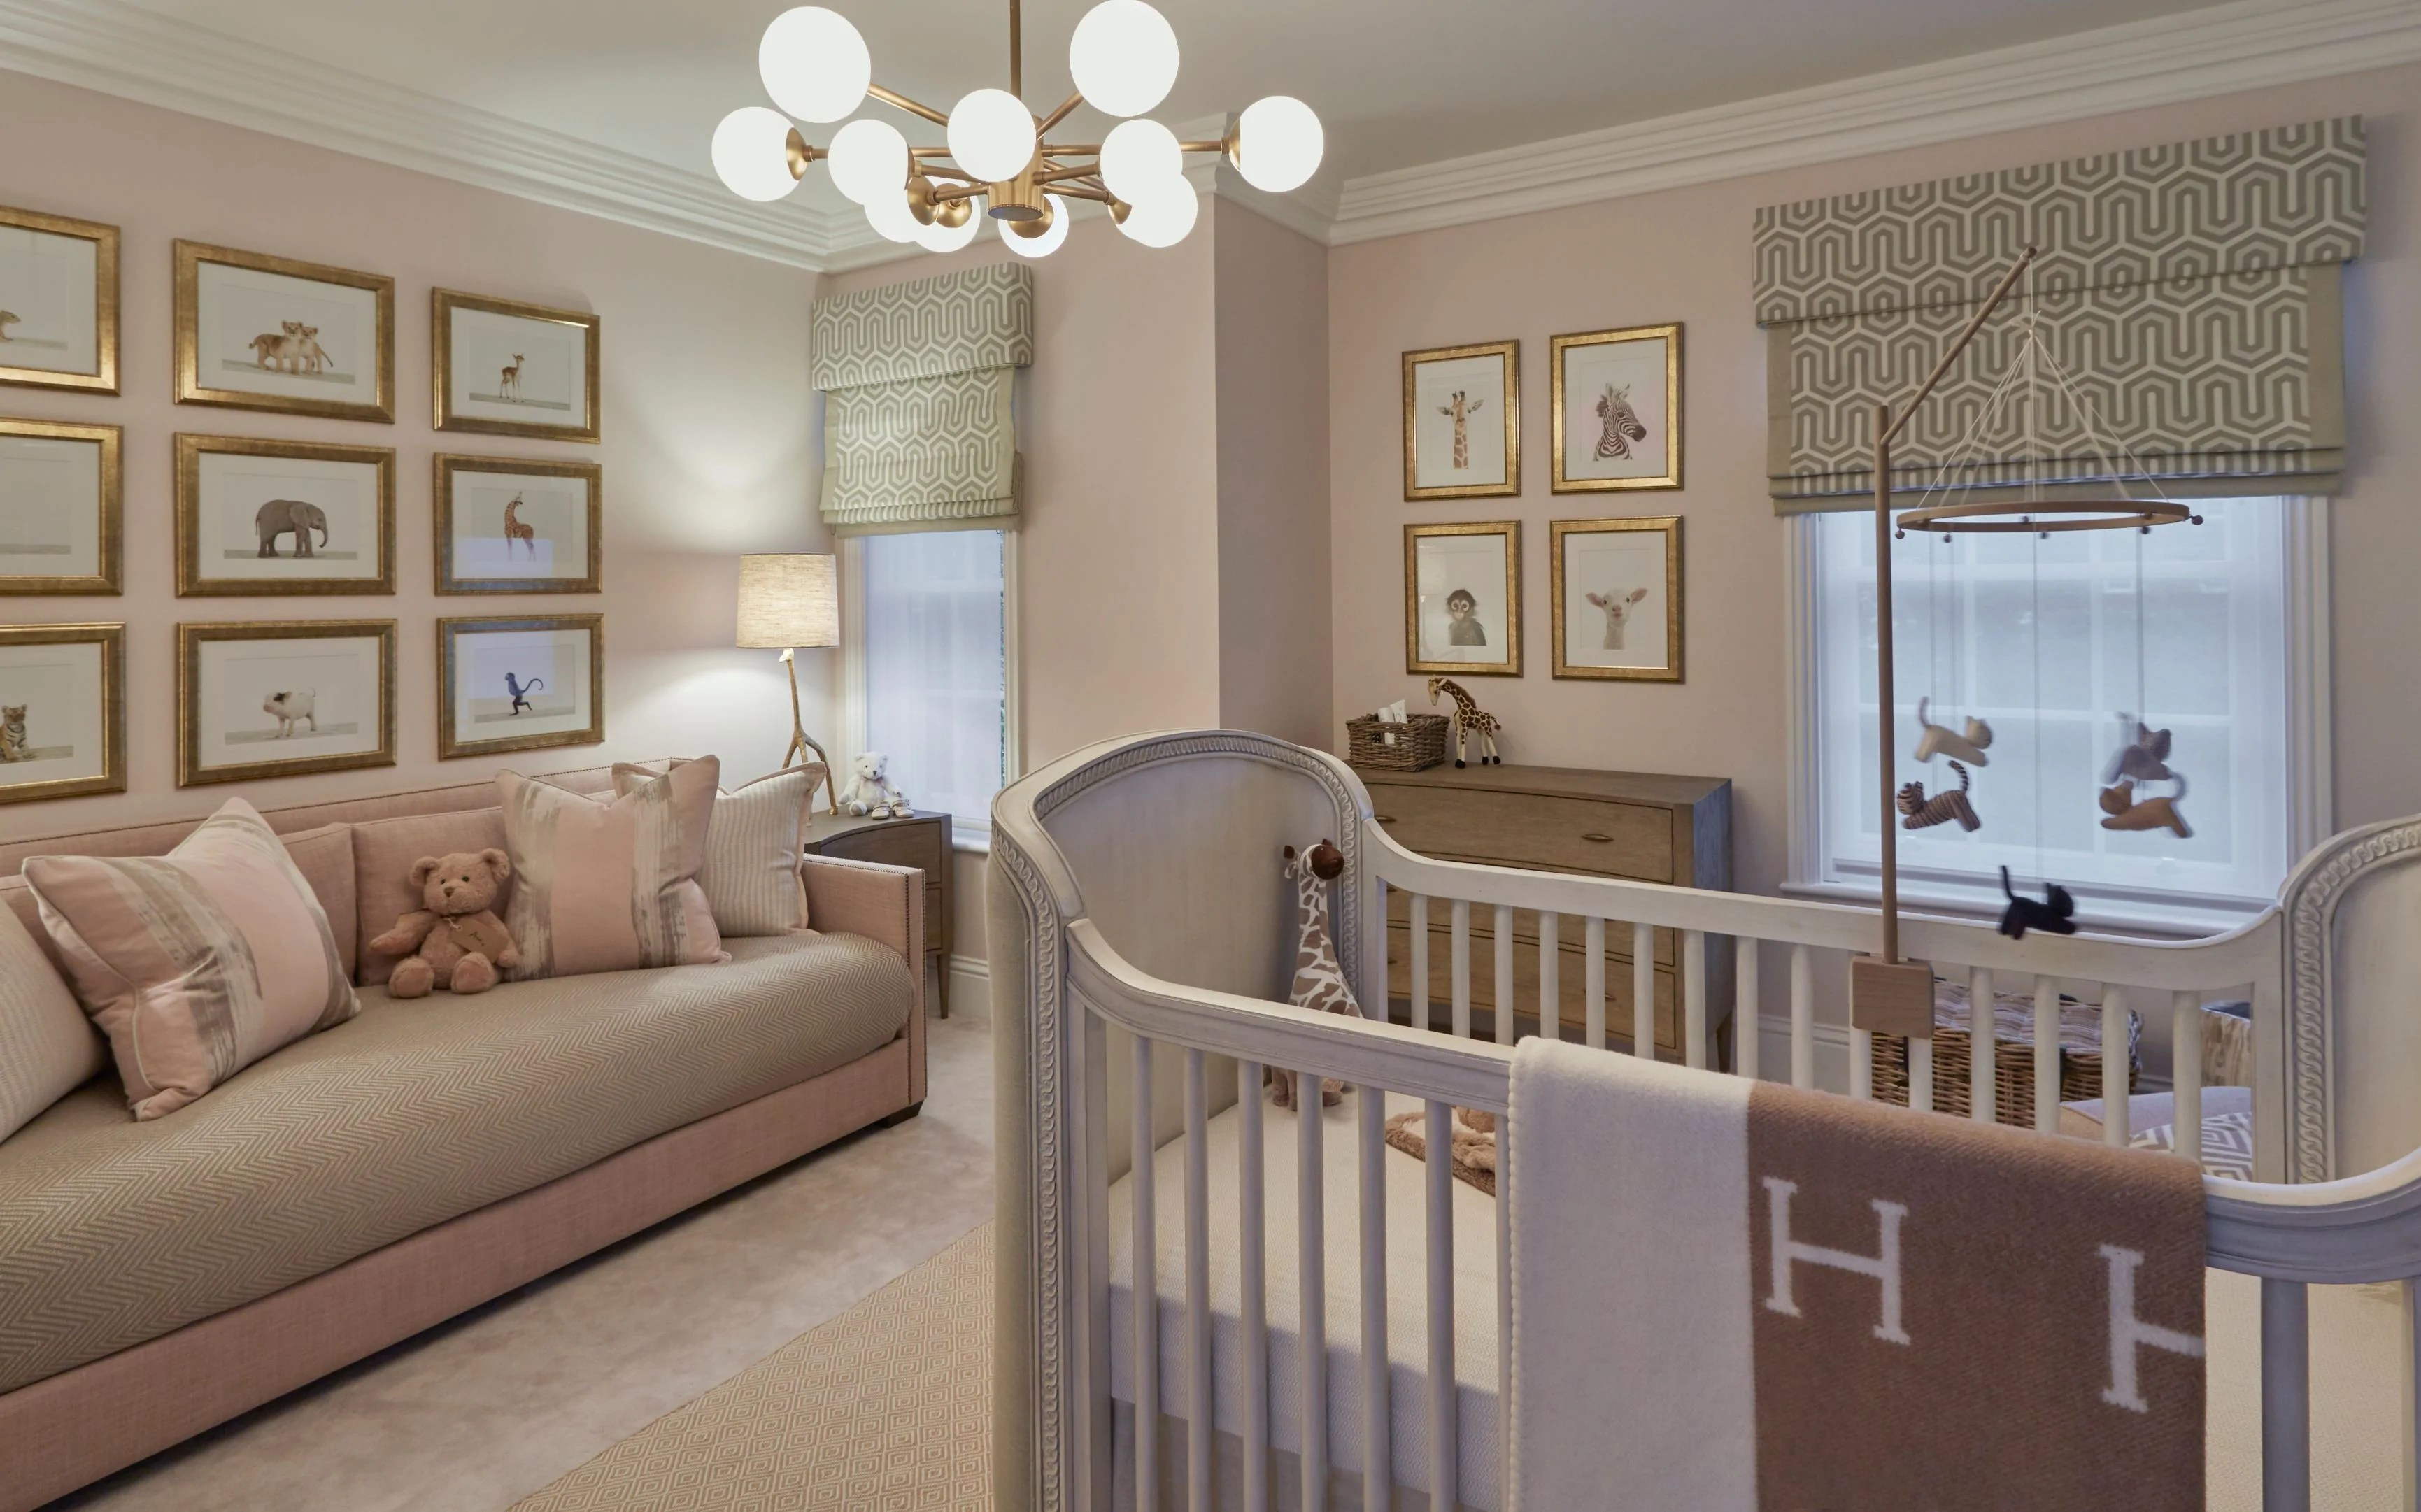 Baby Room Ideas How To Decorate Your Nursery Luxdeco Com